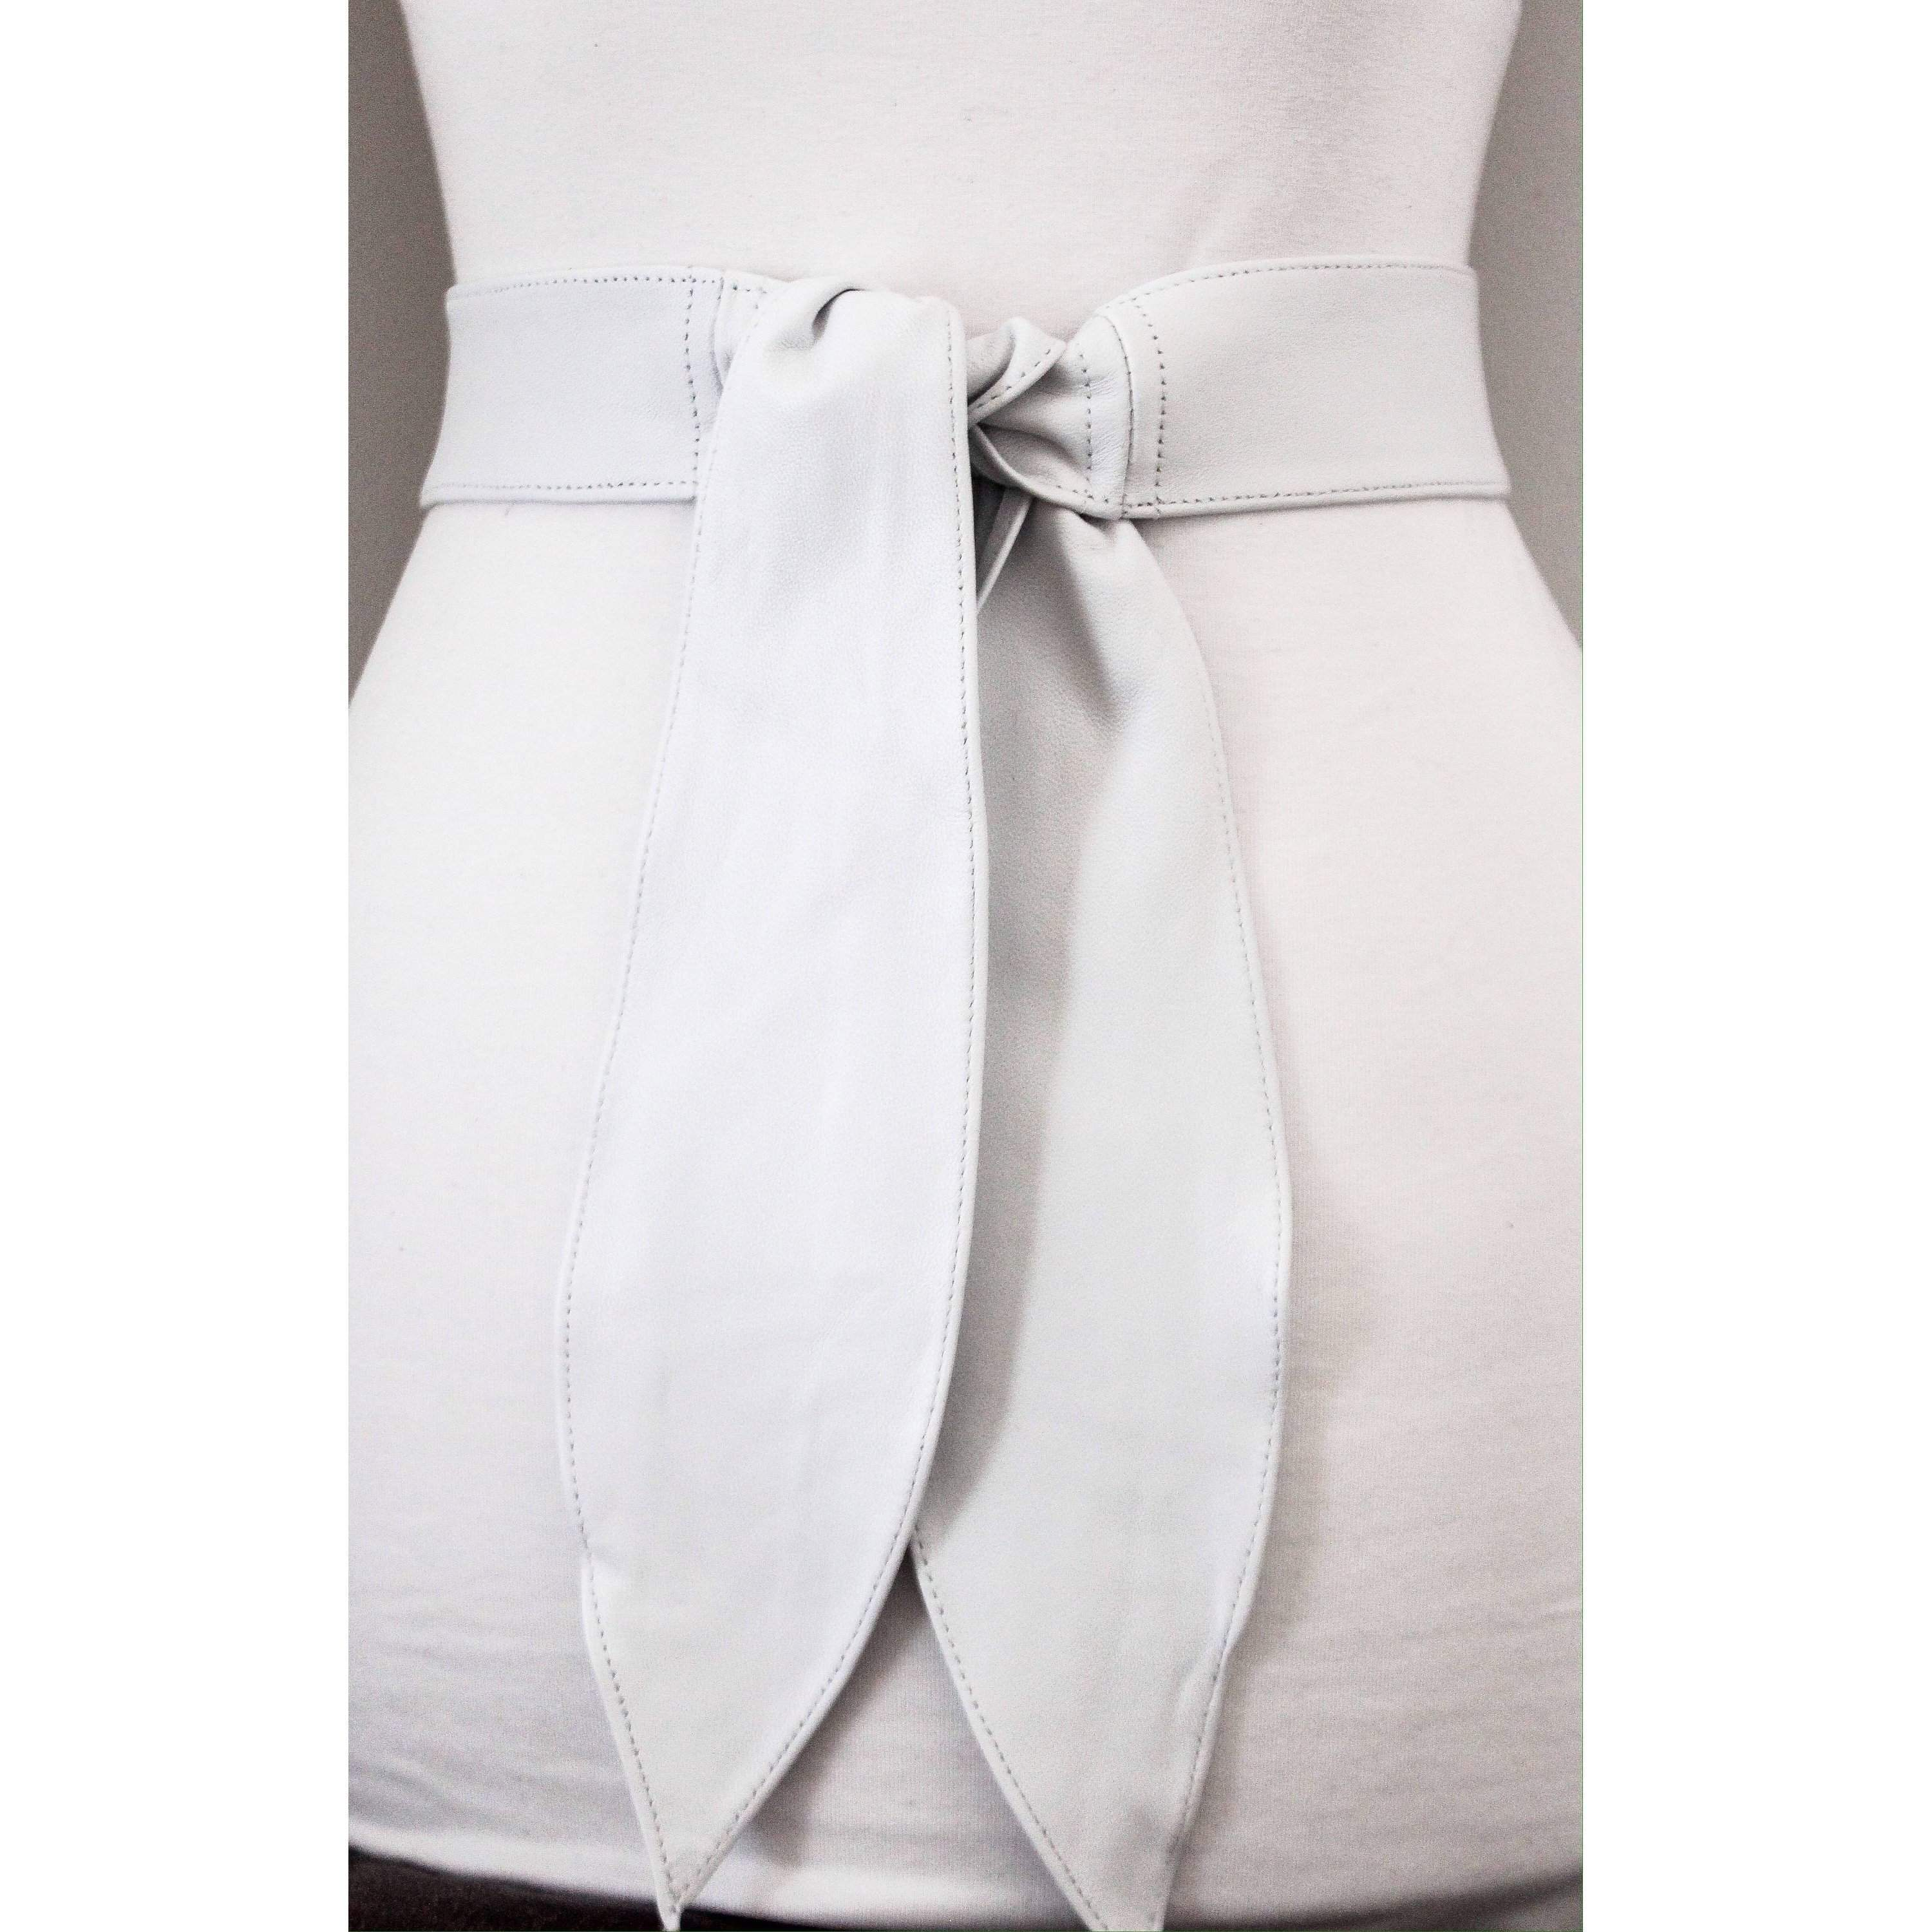 White Leather Sash Belt | Bridal Sash belt | White Leather Belt | Leather Waist Wrap Belt | Obi Belt | Plus Size Accessory | Wide Waist Belt - loveyaayaa